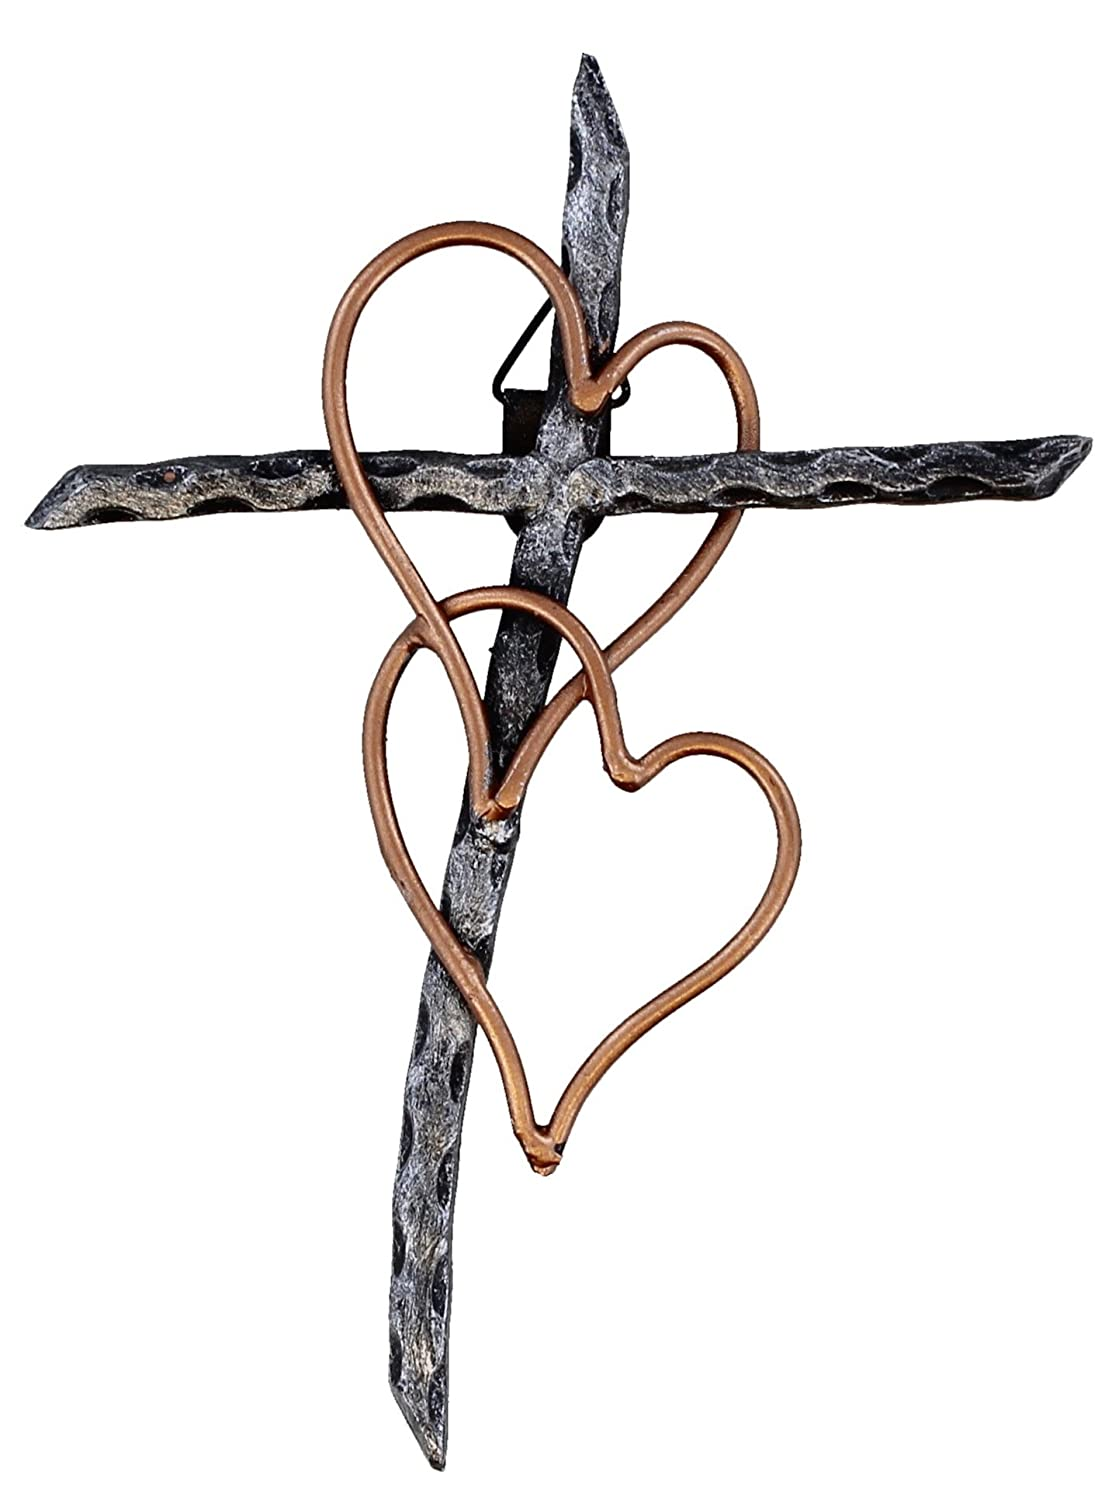 Entwined Hearts Decorative Welded Metal Wall Cross - Two Hearts Joined - Small Version Old River Outdoors